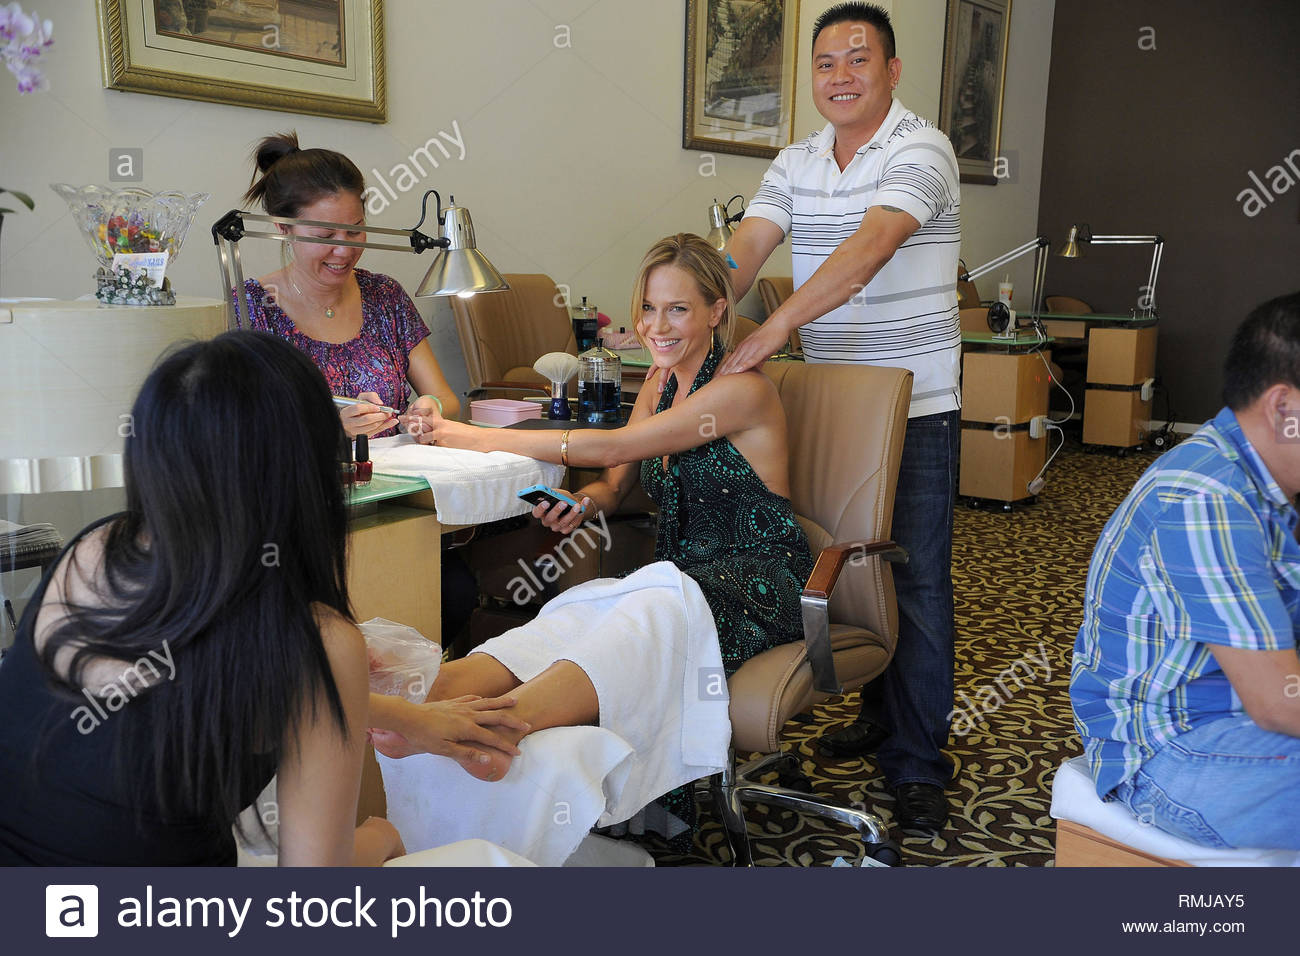 *EXCLUSIVE* Los Angeles, CA - Actress Julie Benz shows her big smile and a  first look at her engagement ring while getting a mani-pedi and massage  from ...